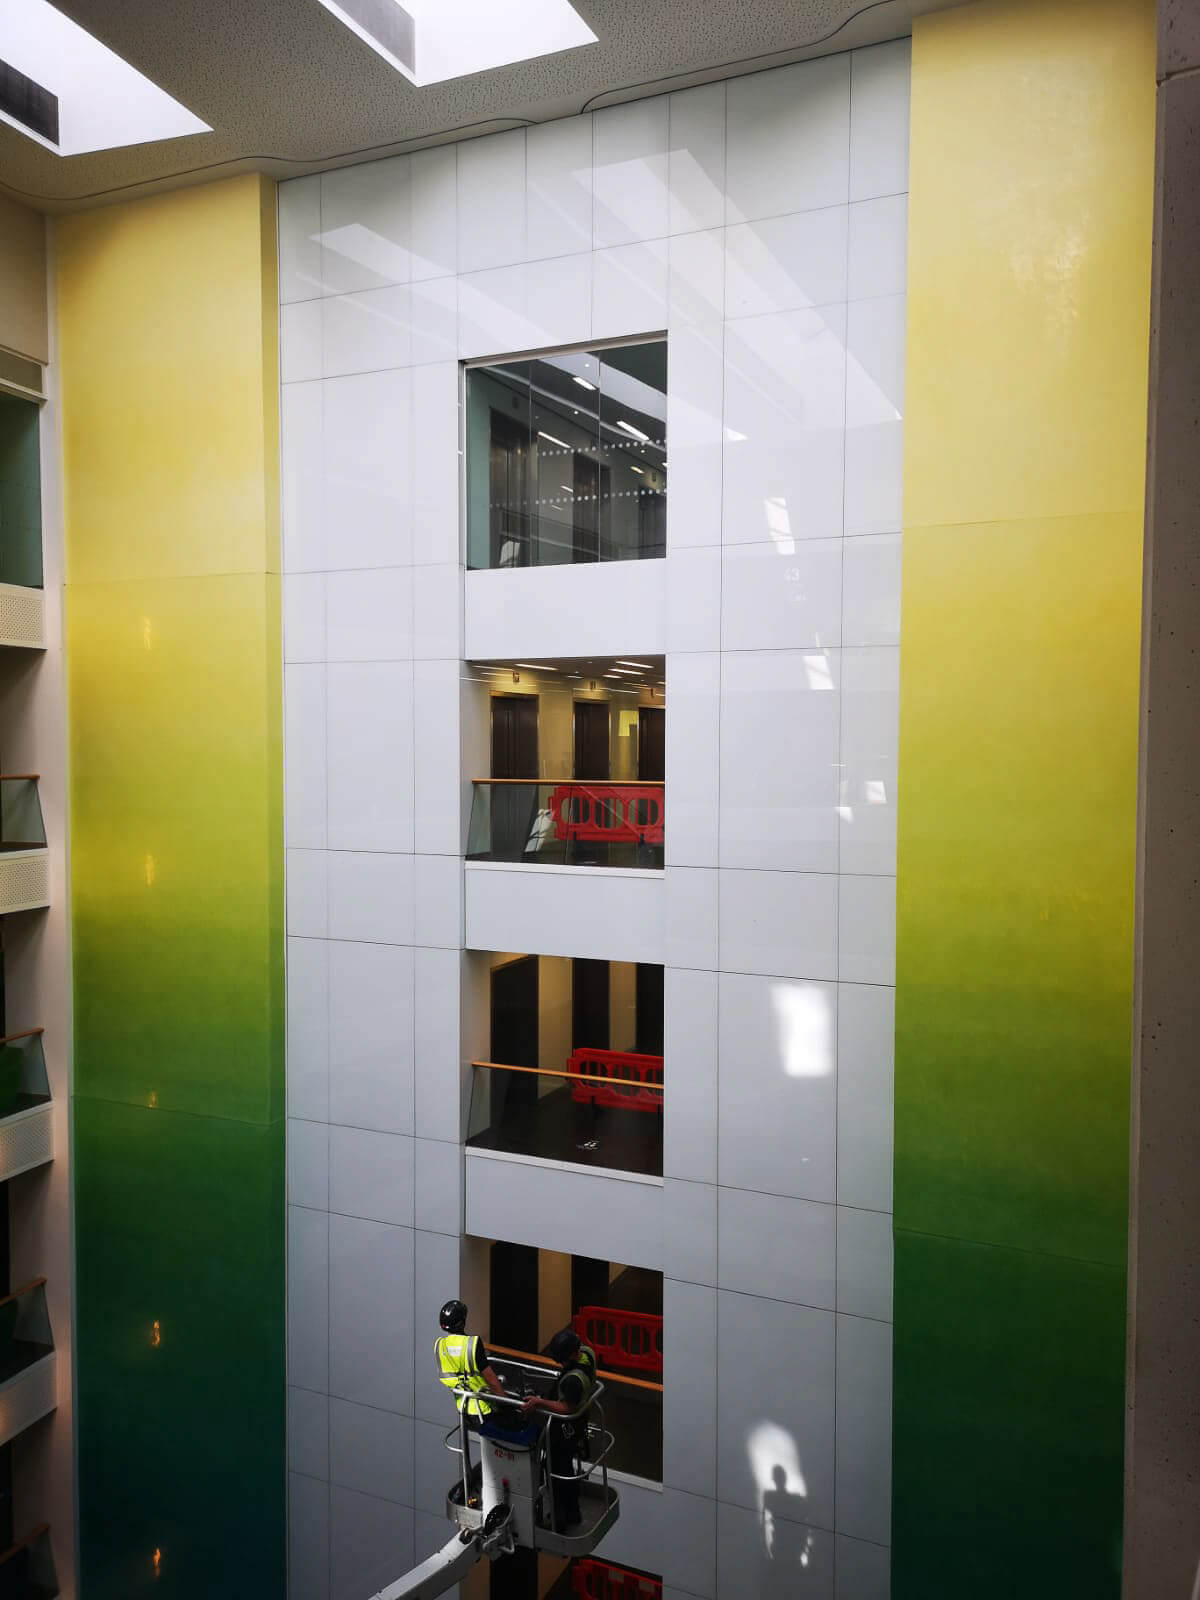 GR were tasked to remove and refurbish this extensive high level internal glass feature wall.